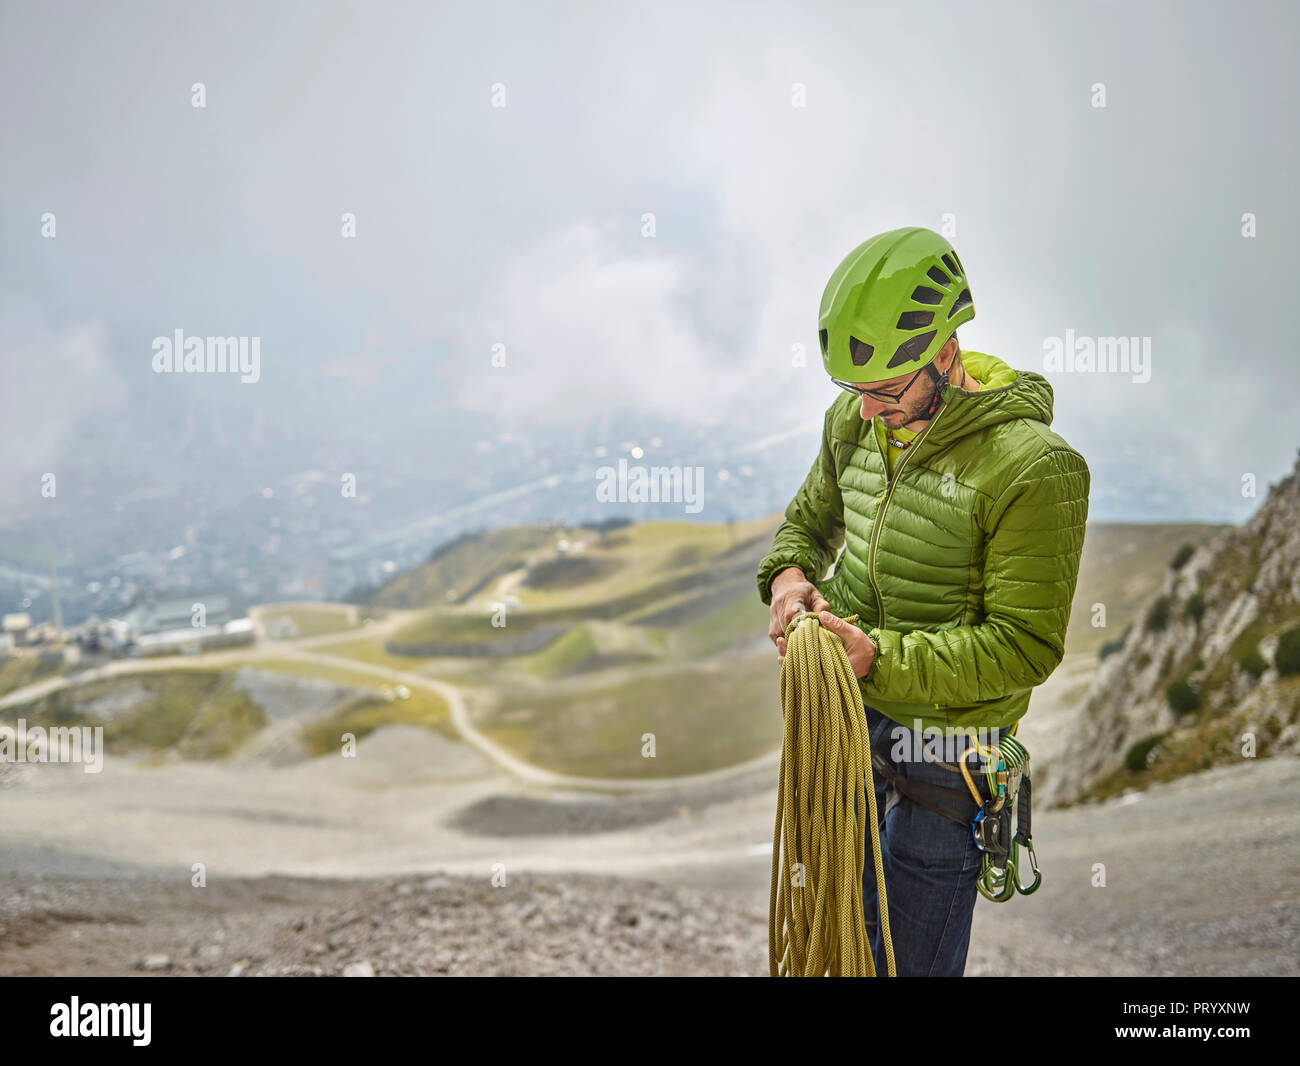 Austria, Innsbruck, Nordkette, man with rope and climbing equipment - Stock Image